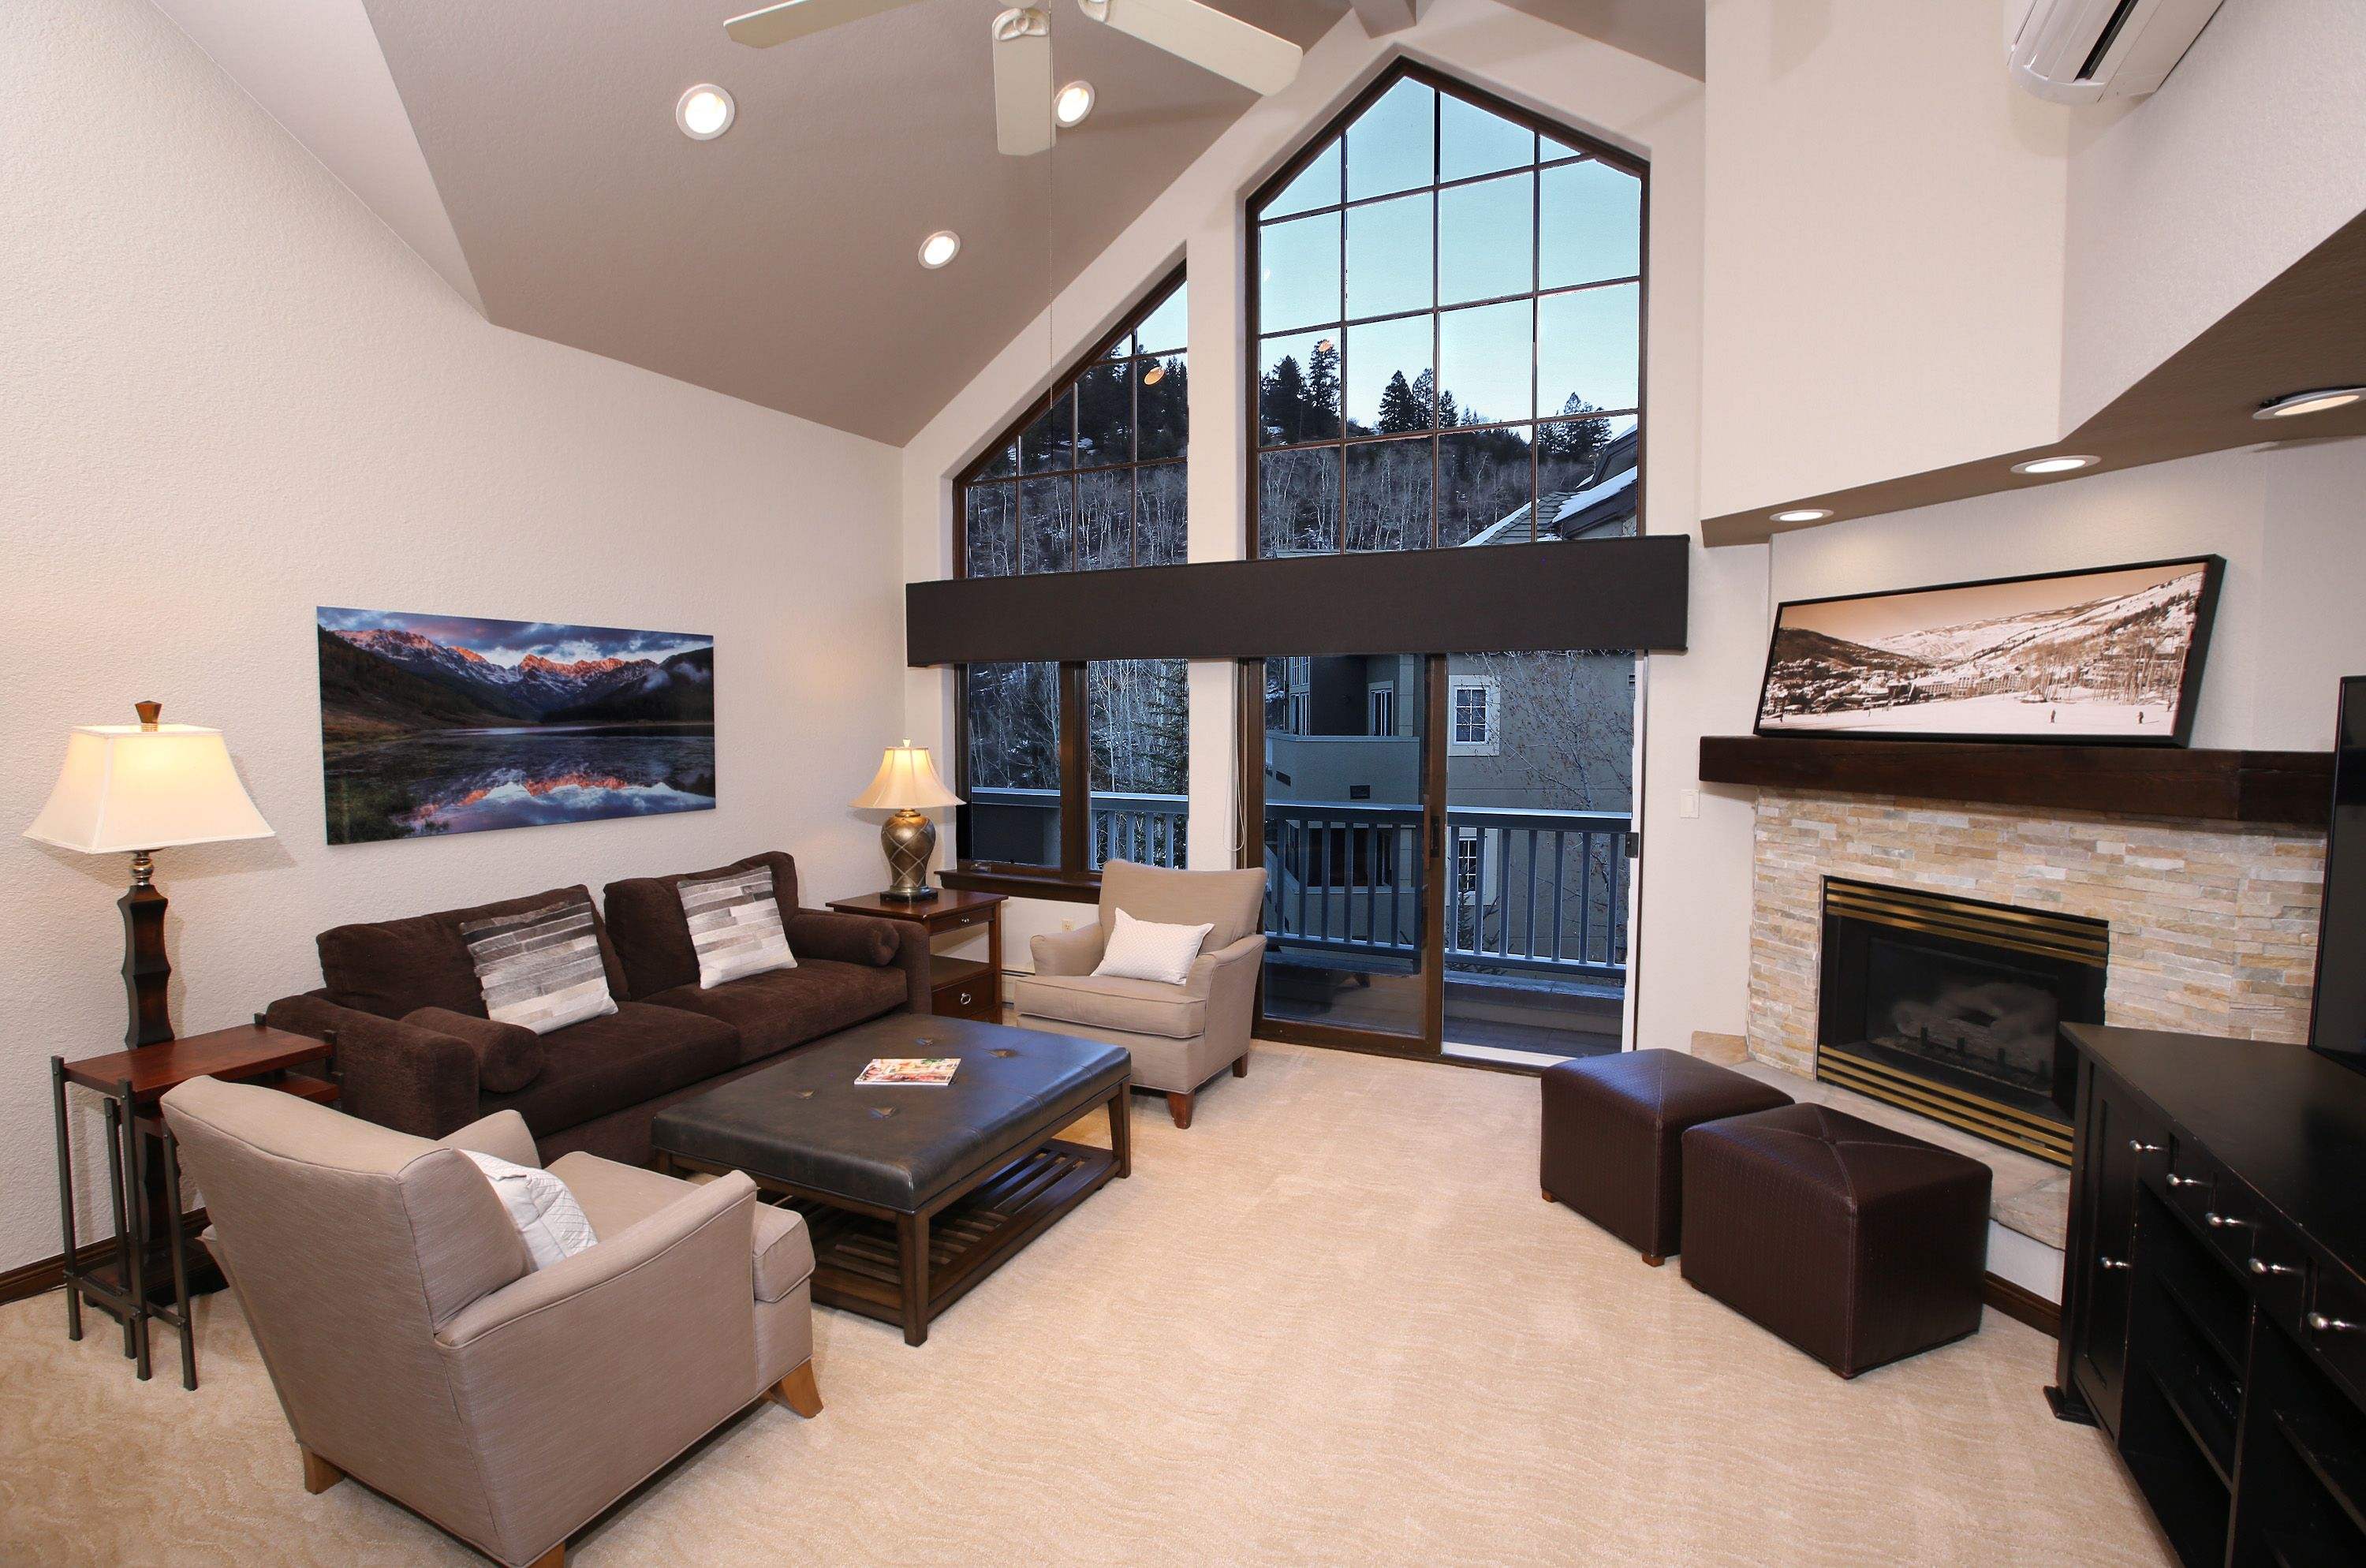 210 Offerson Road # R-317 Beaver Creek, CO 81620